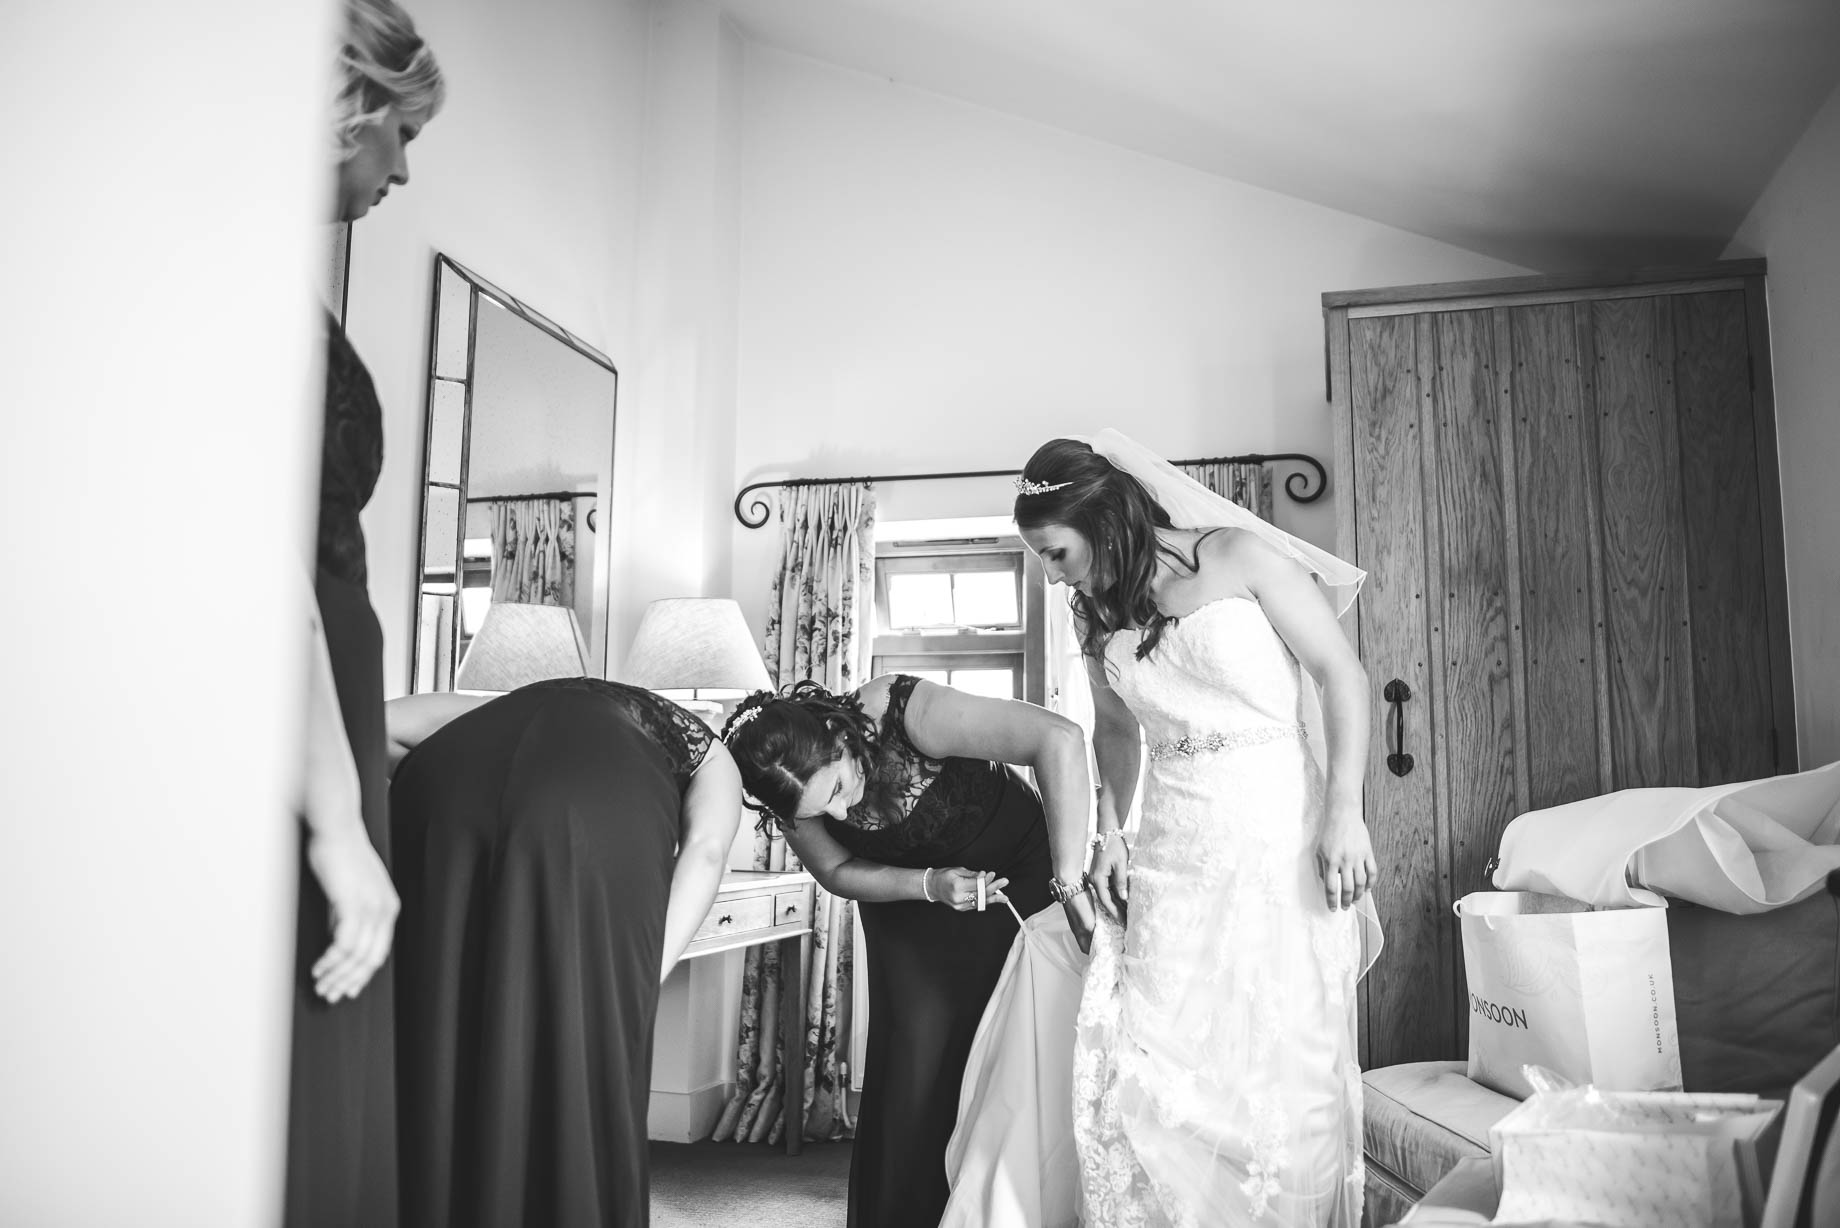 Gate Street Barn wedding photography - Guy Collier - Claire and Andy (44 of 192)